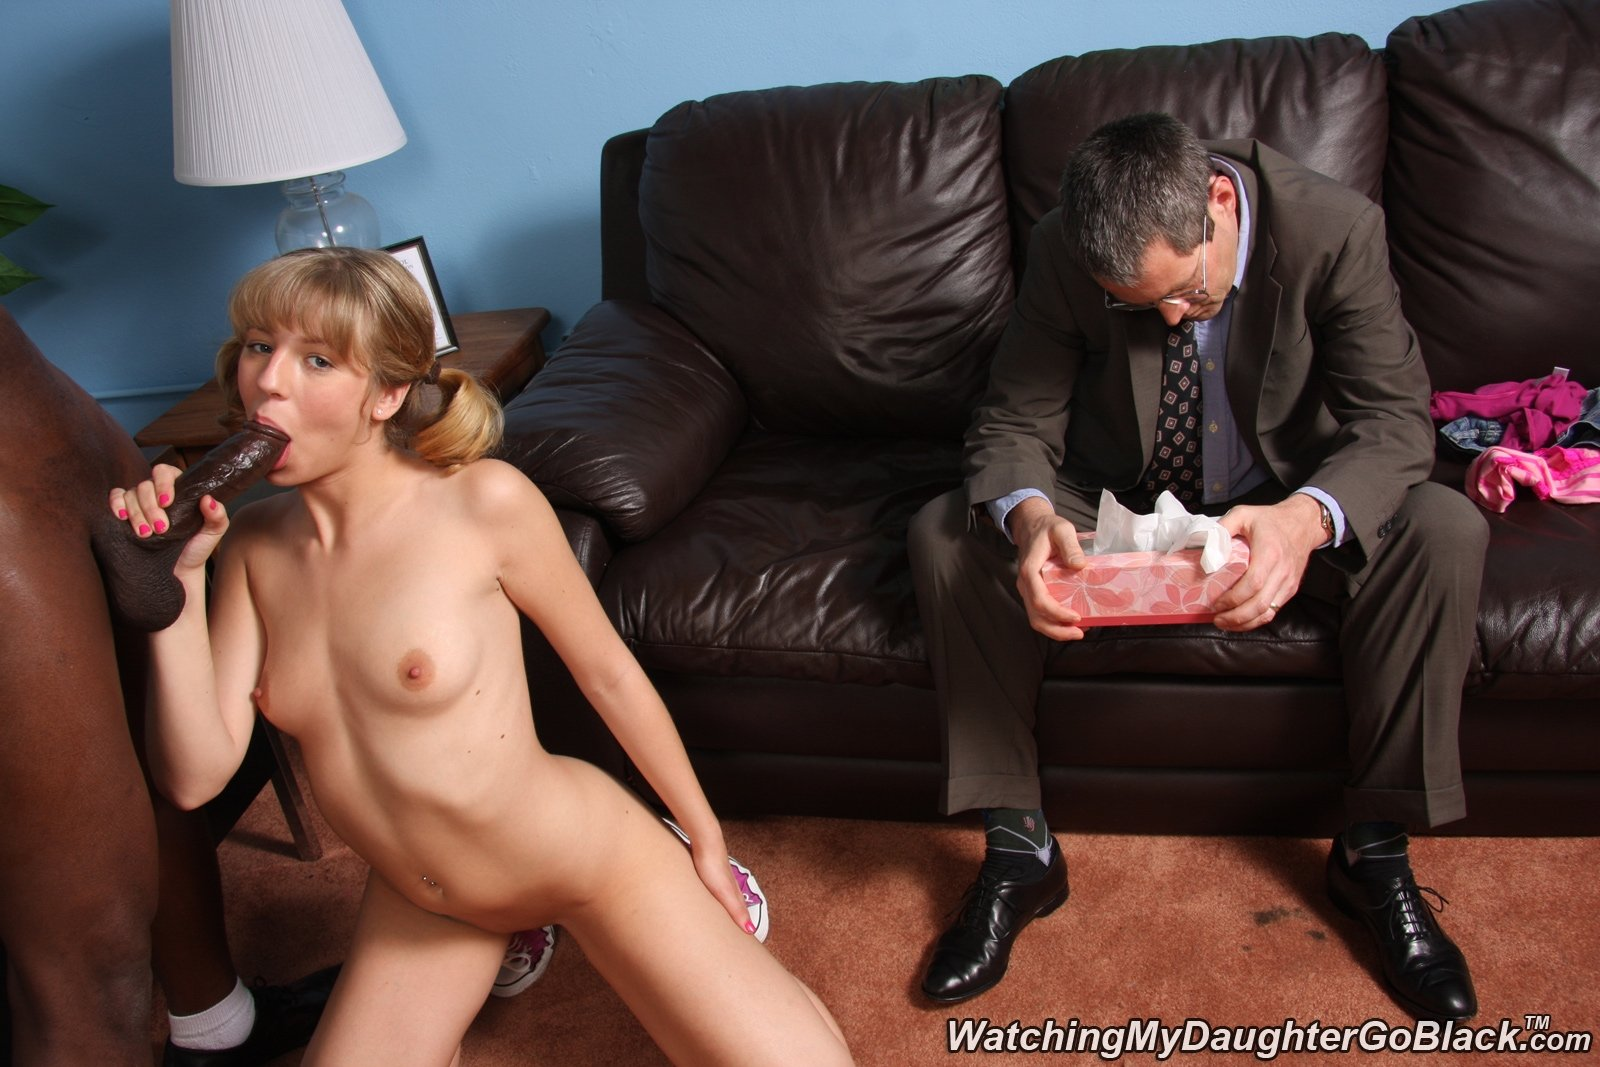 Web cam boys wife cheating with another woman porn